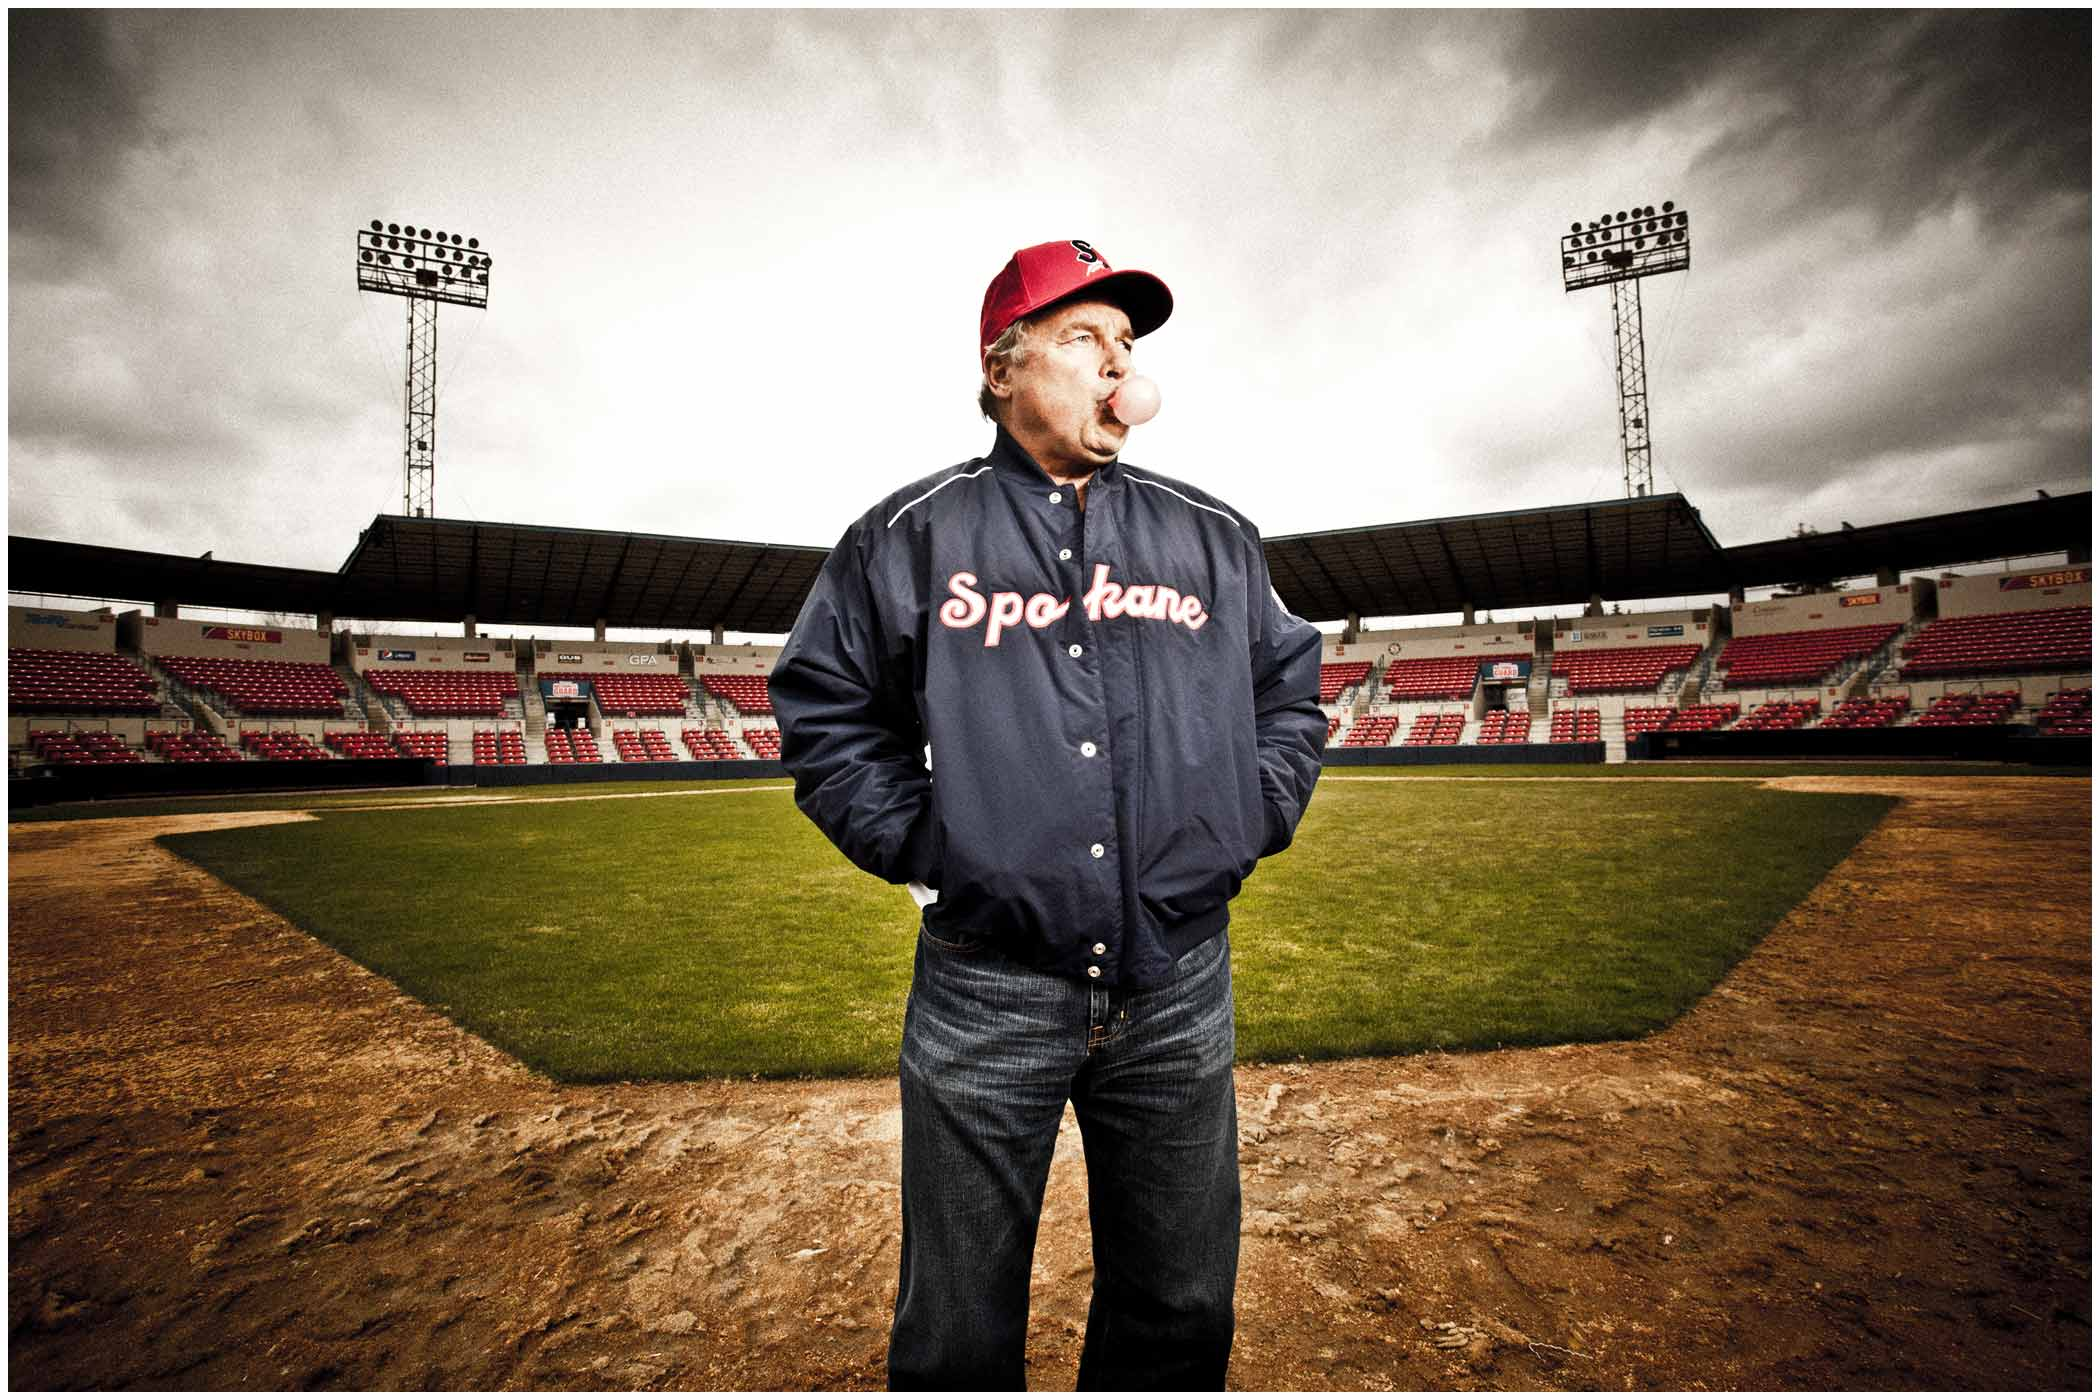 Bobby Brett - Owner of the Spokane Indians